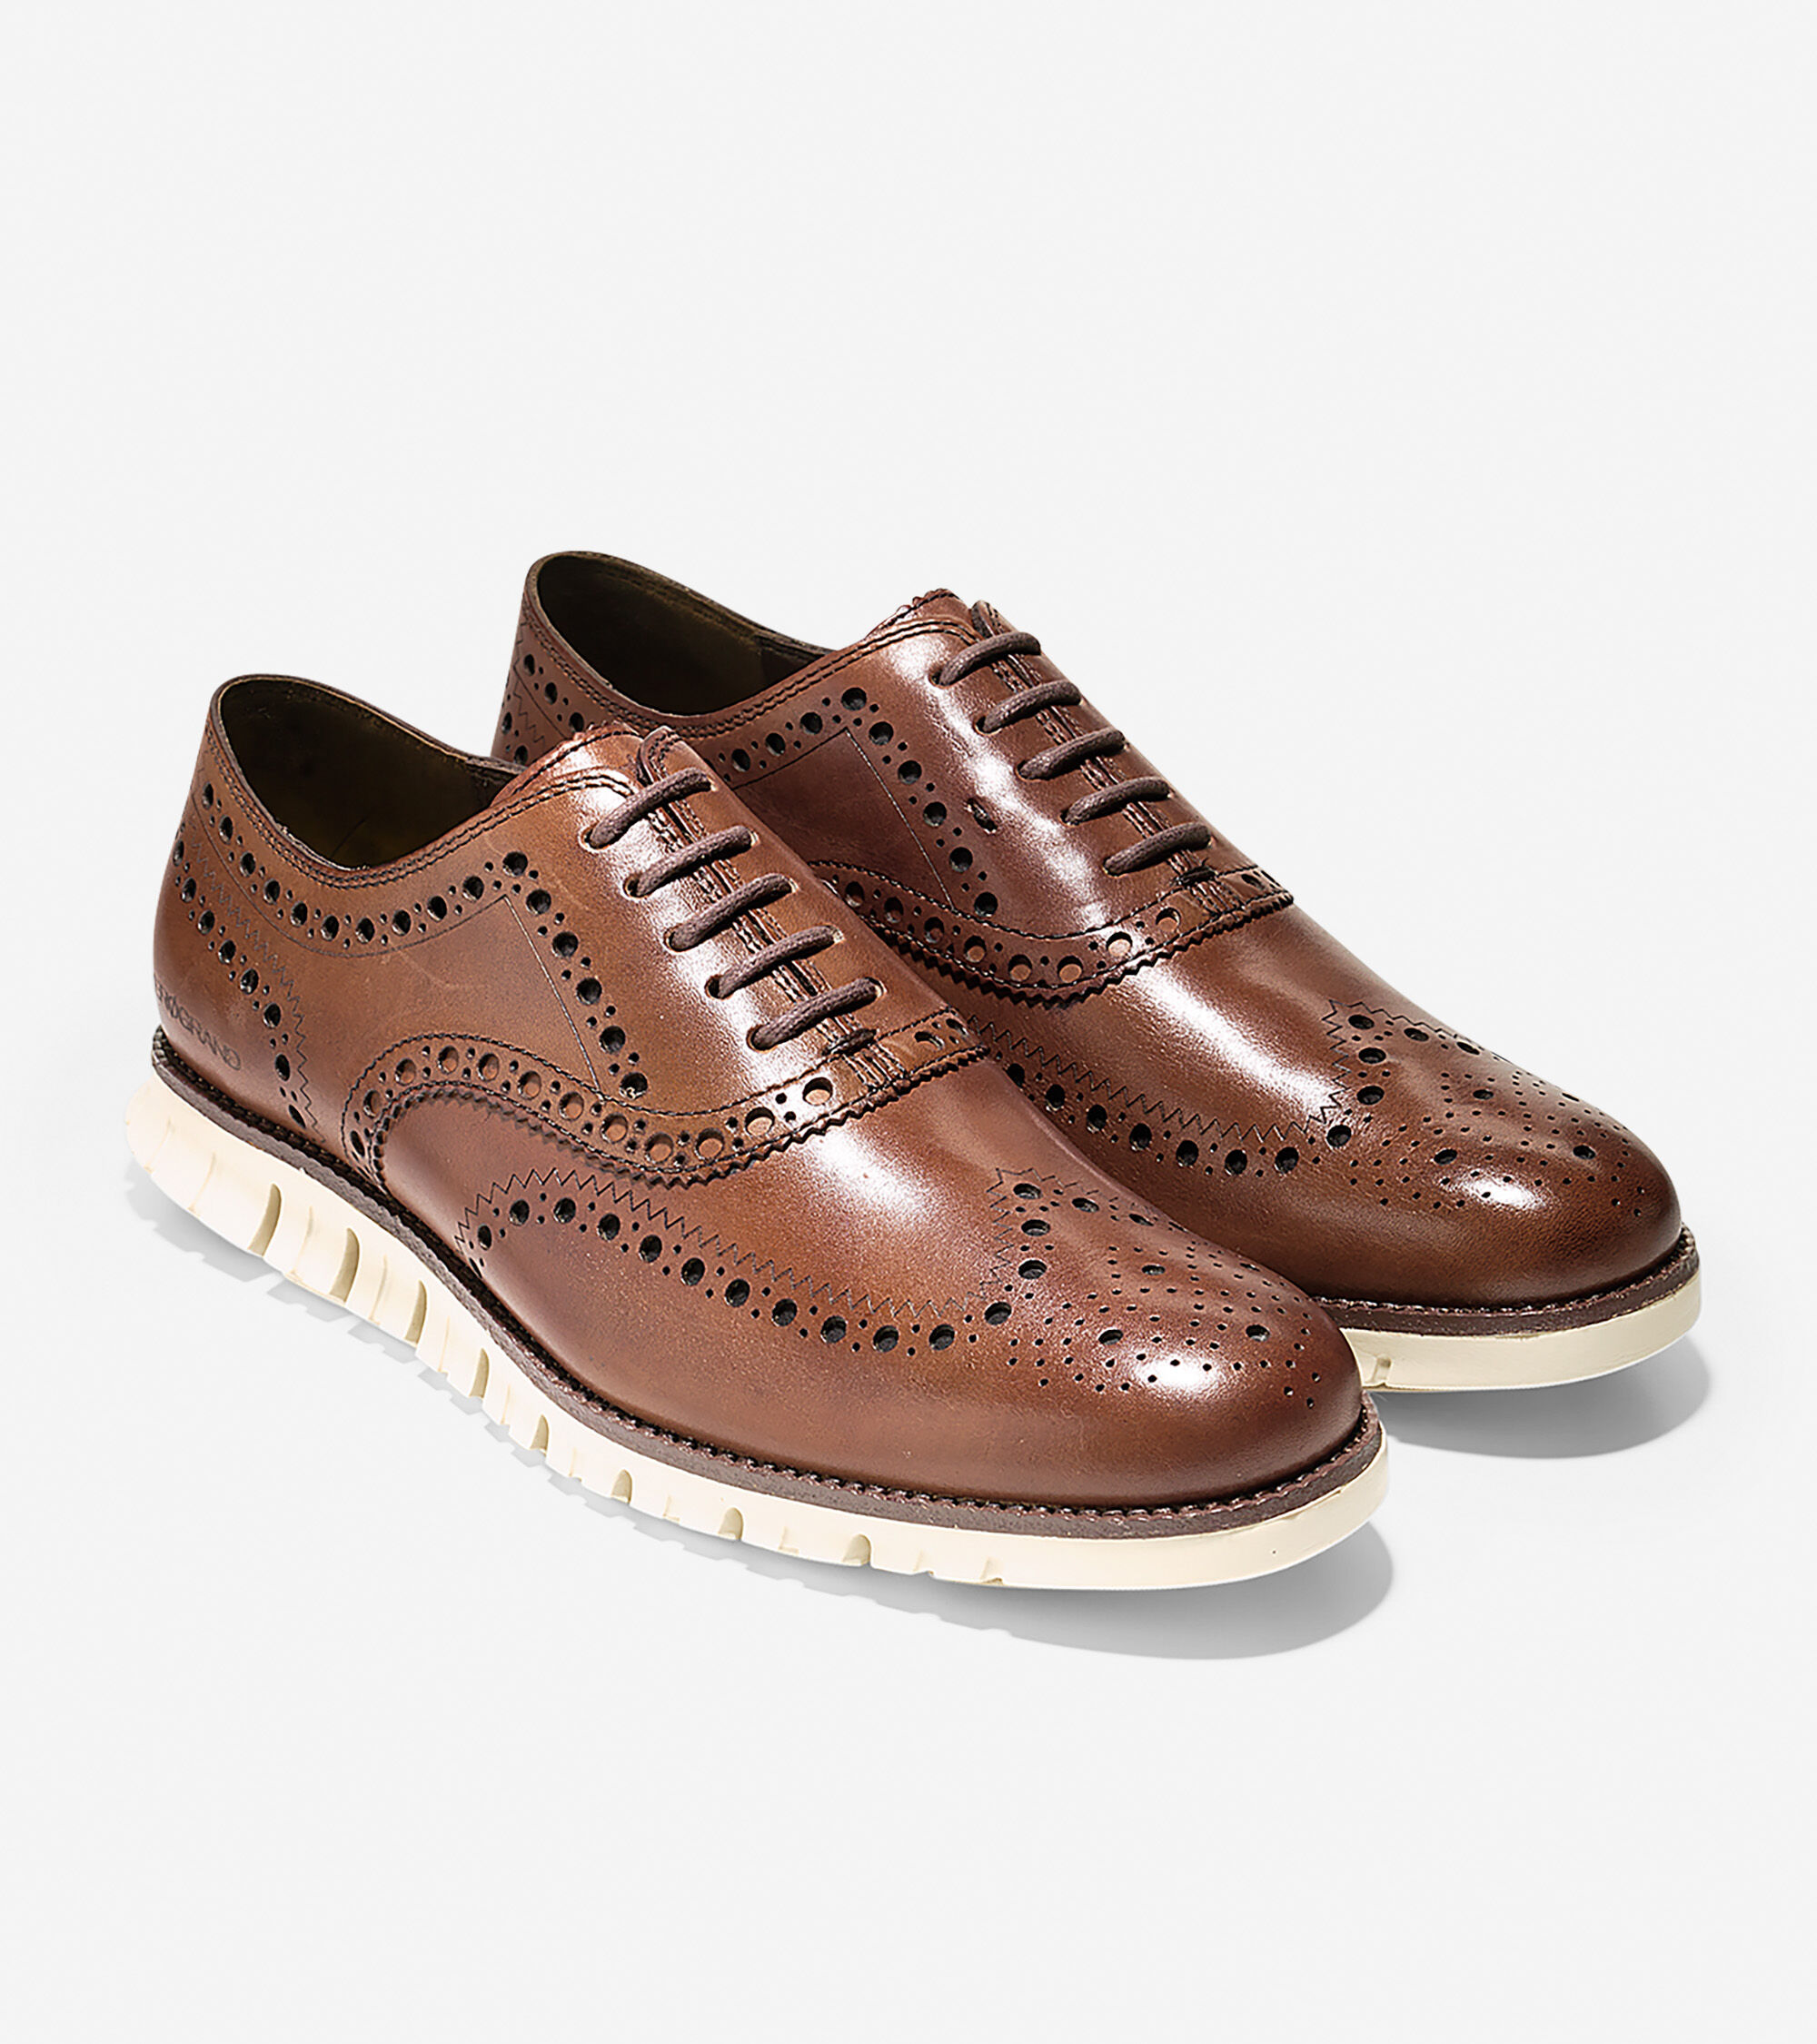 Men's ZEROGRAND Wing Oxfords in British Tan